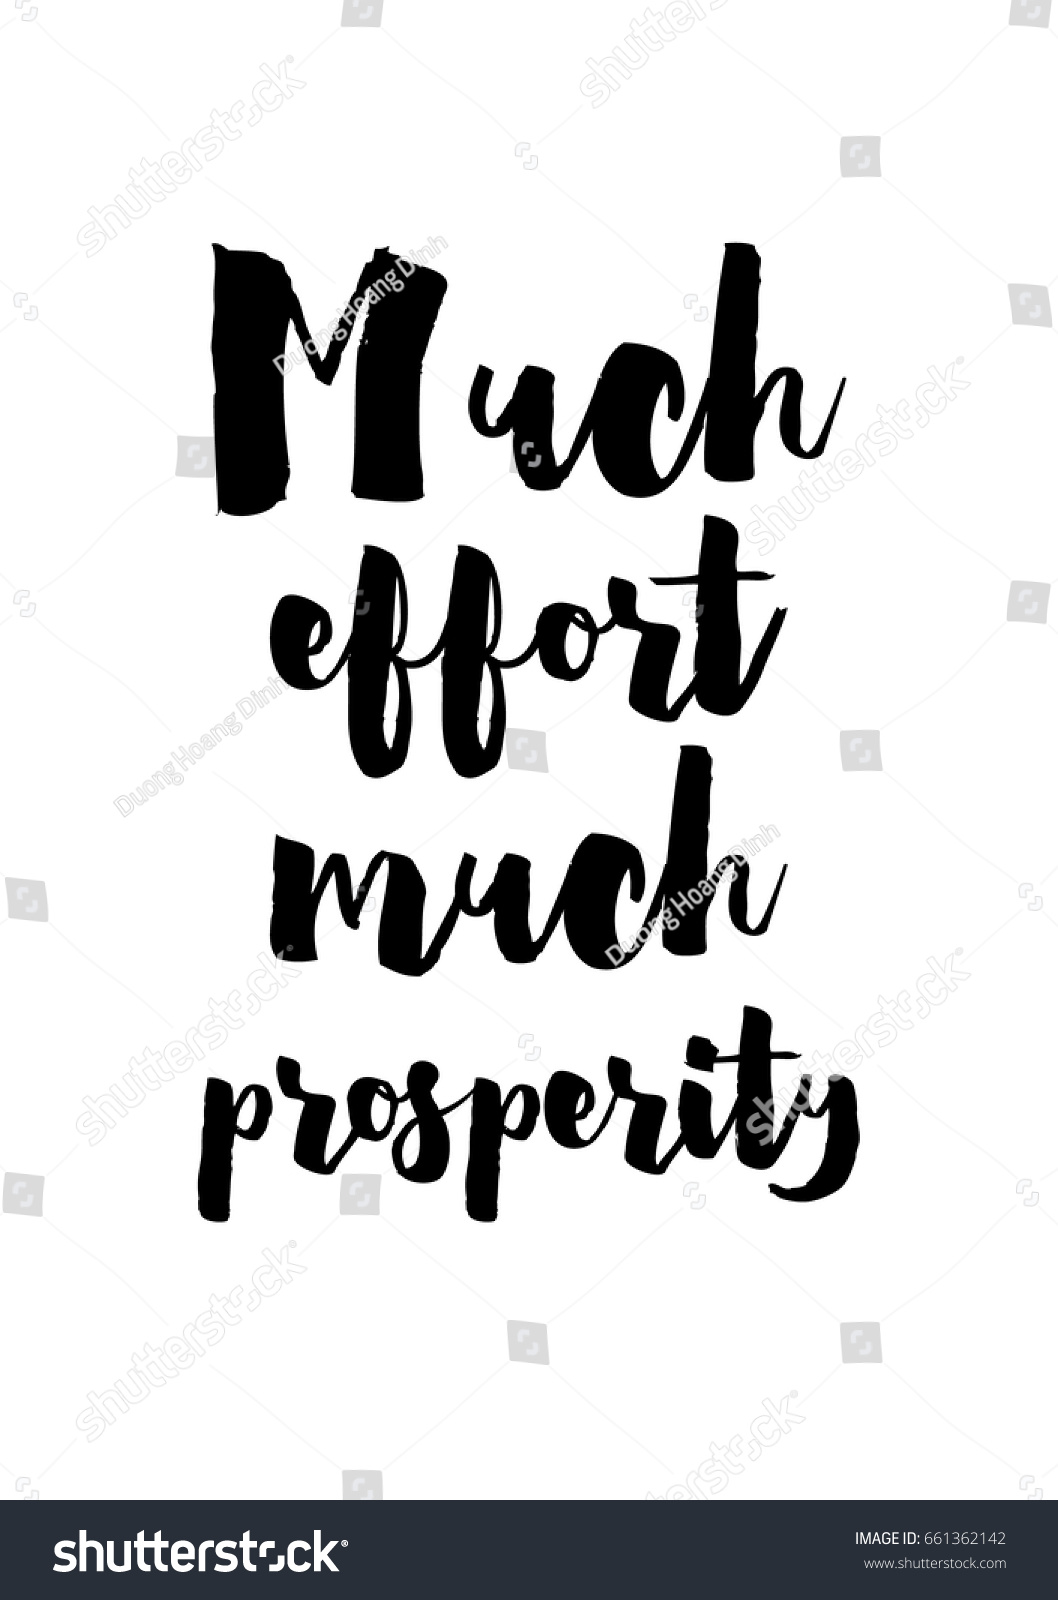 Quotes Effort Lettering Quotes Motivation About Life Quote Stock Vector